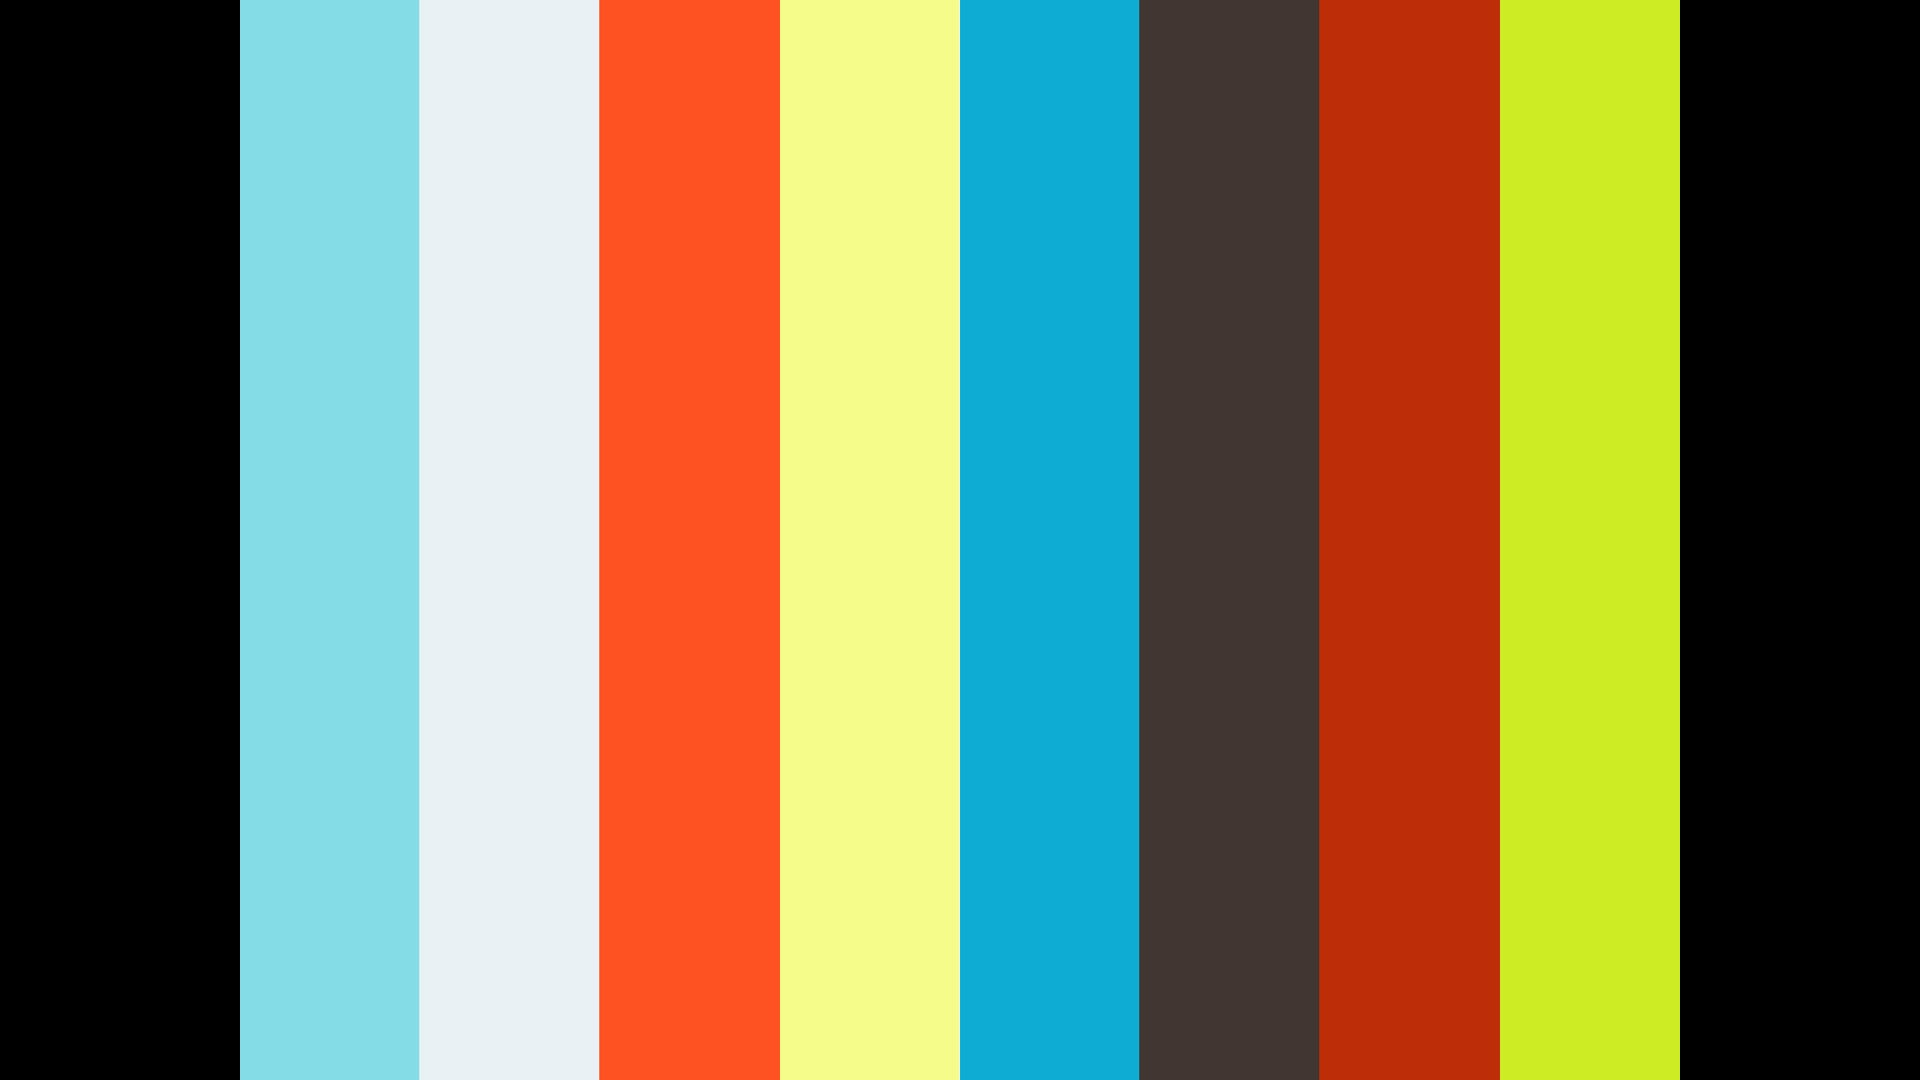 Death Valley National Park – ODB Upper Body